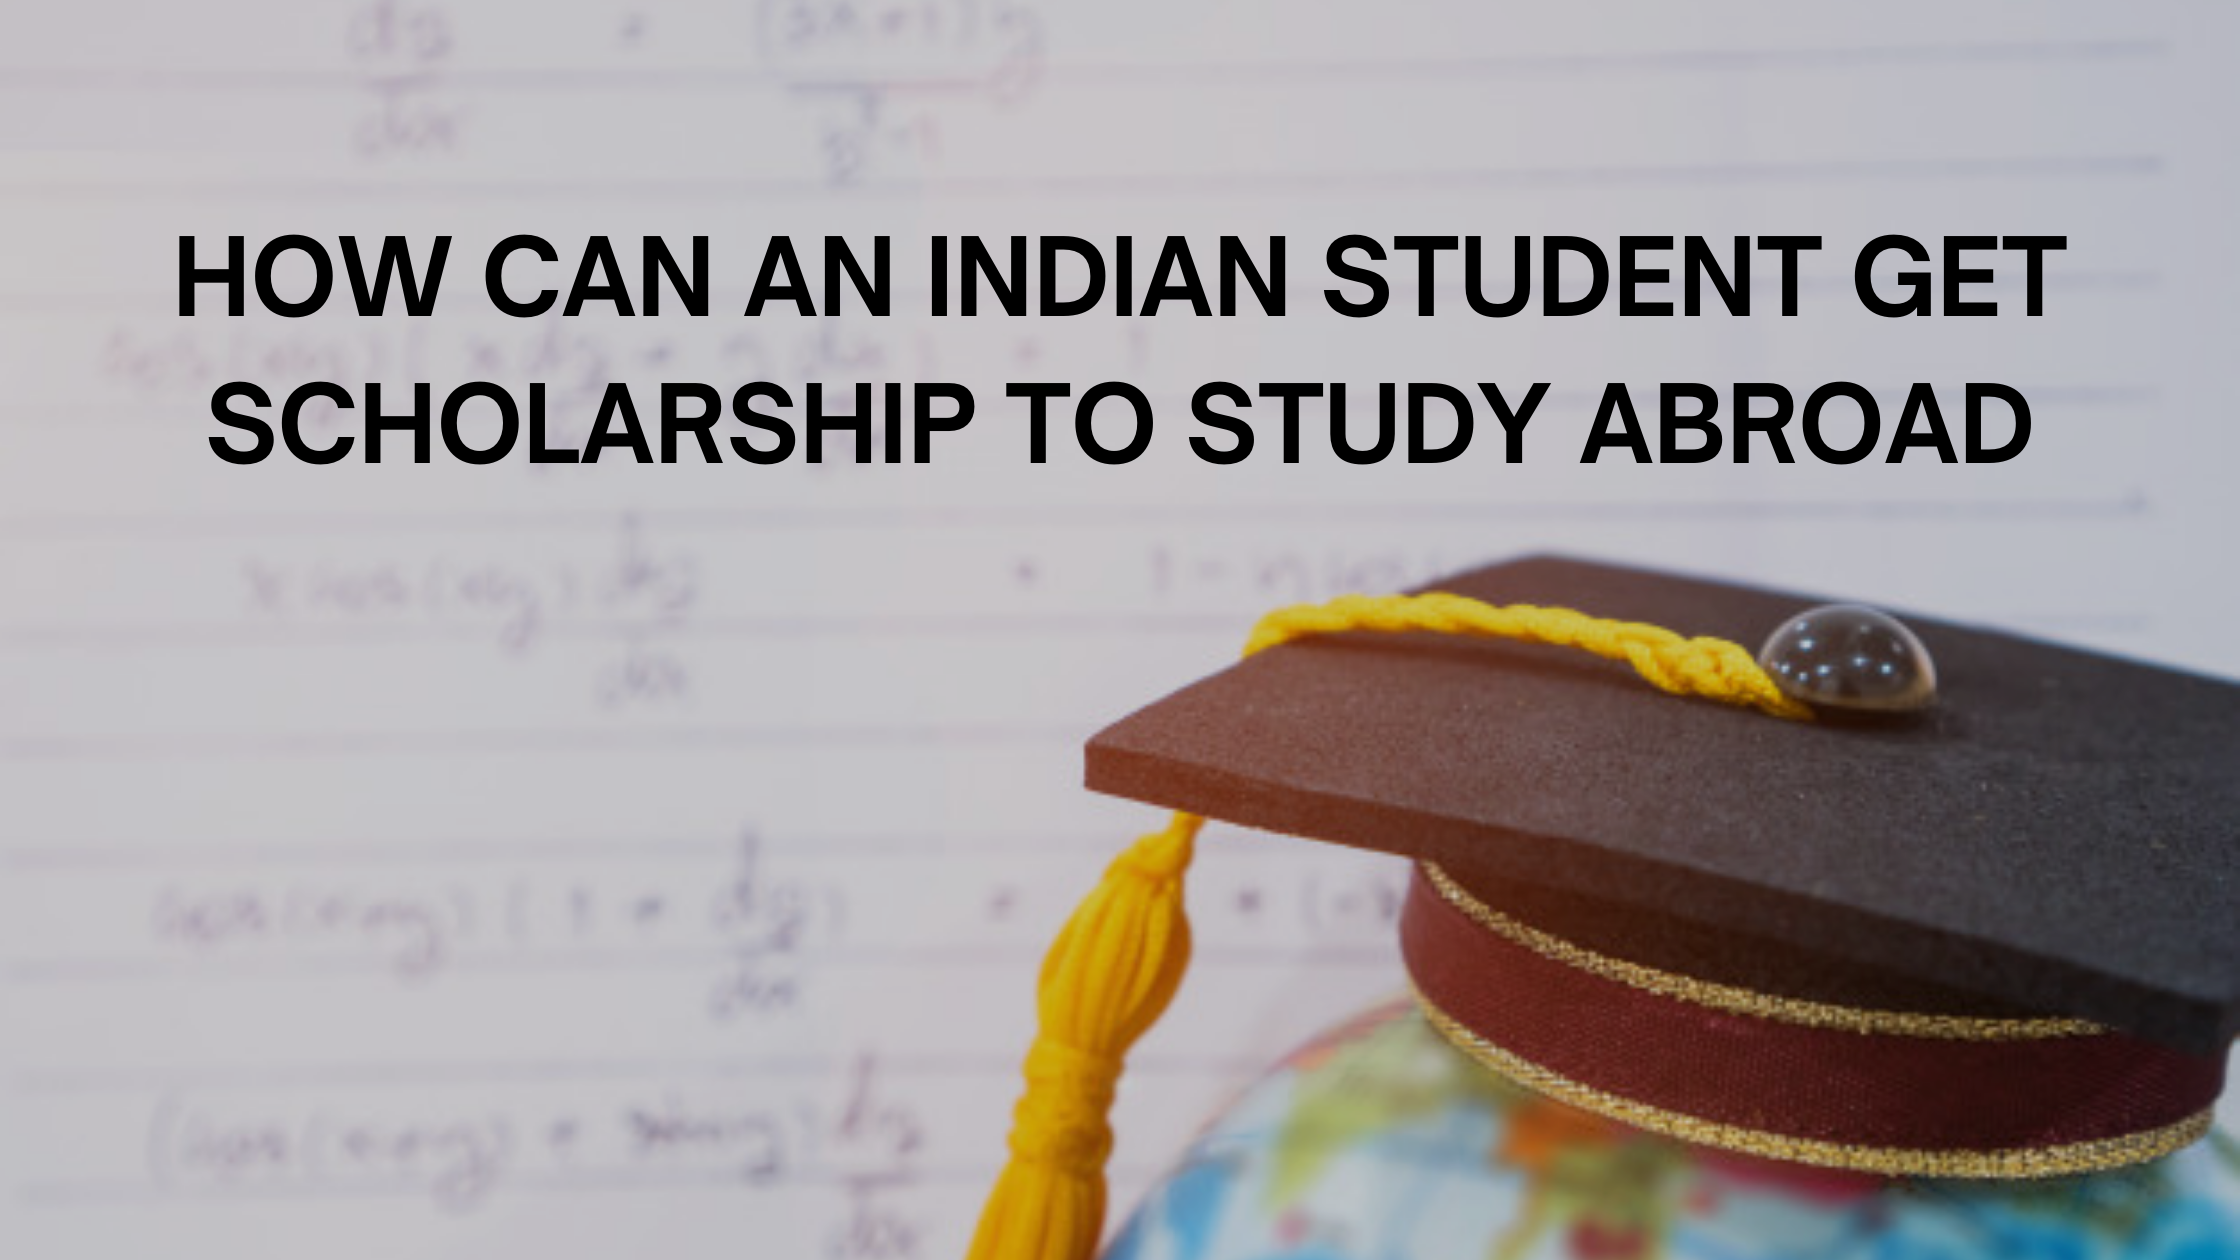 Indian students get scholarship to study abroad